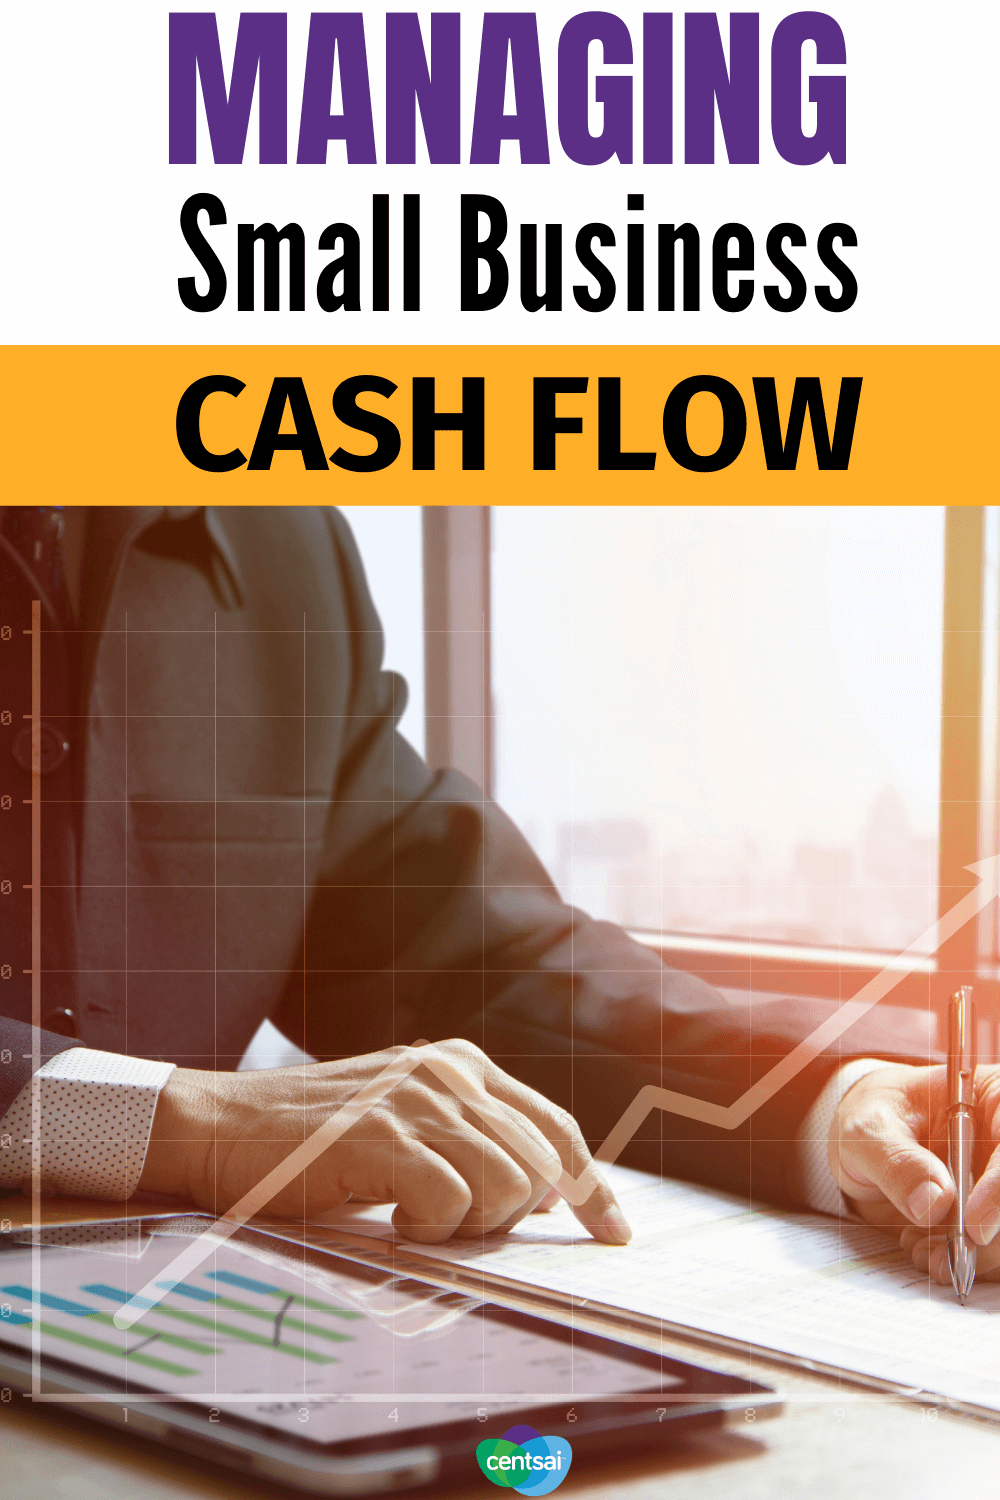 Managing Small Business Cash Flow. Managing cash flow is an issue for many small businesses. Here are some tips to help your business handle the financial stress. #CentSai #smallbusiness #cashflow #entrepreneurship #smallbusiness